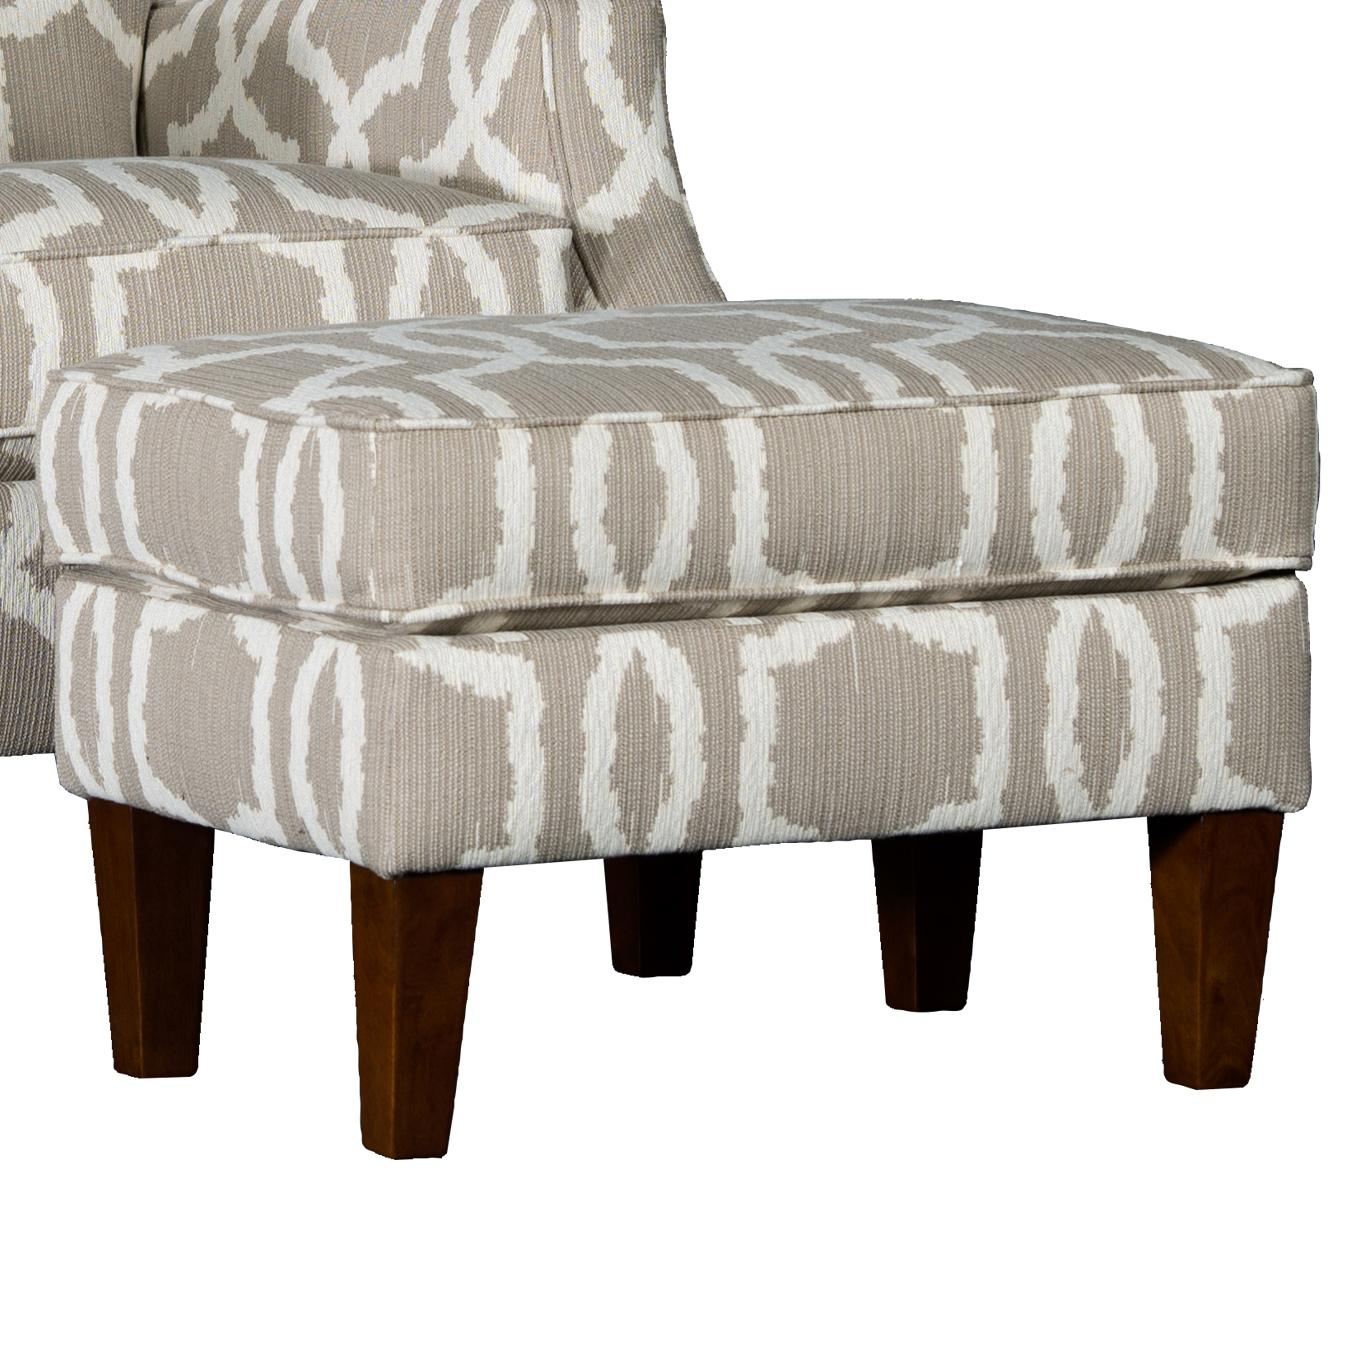 3725 Ottoman by Mayo at Wilson's Furniture